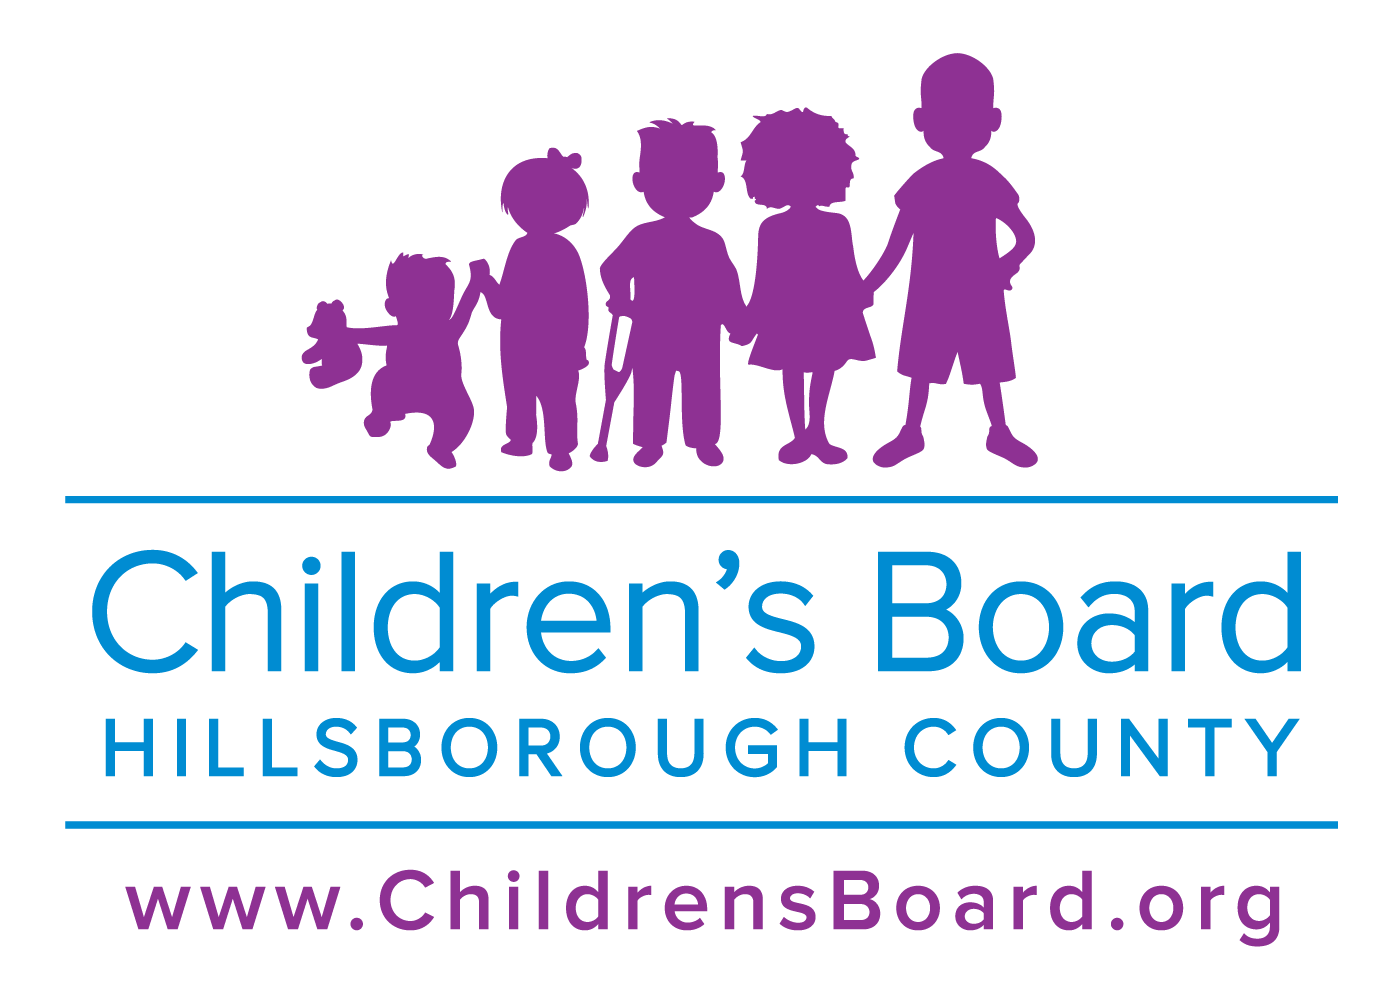 Childrens Board Hillsborgh County